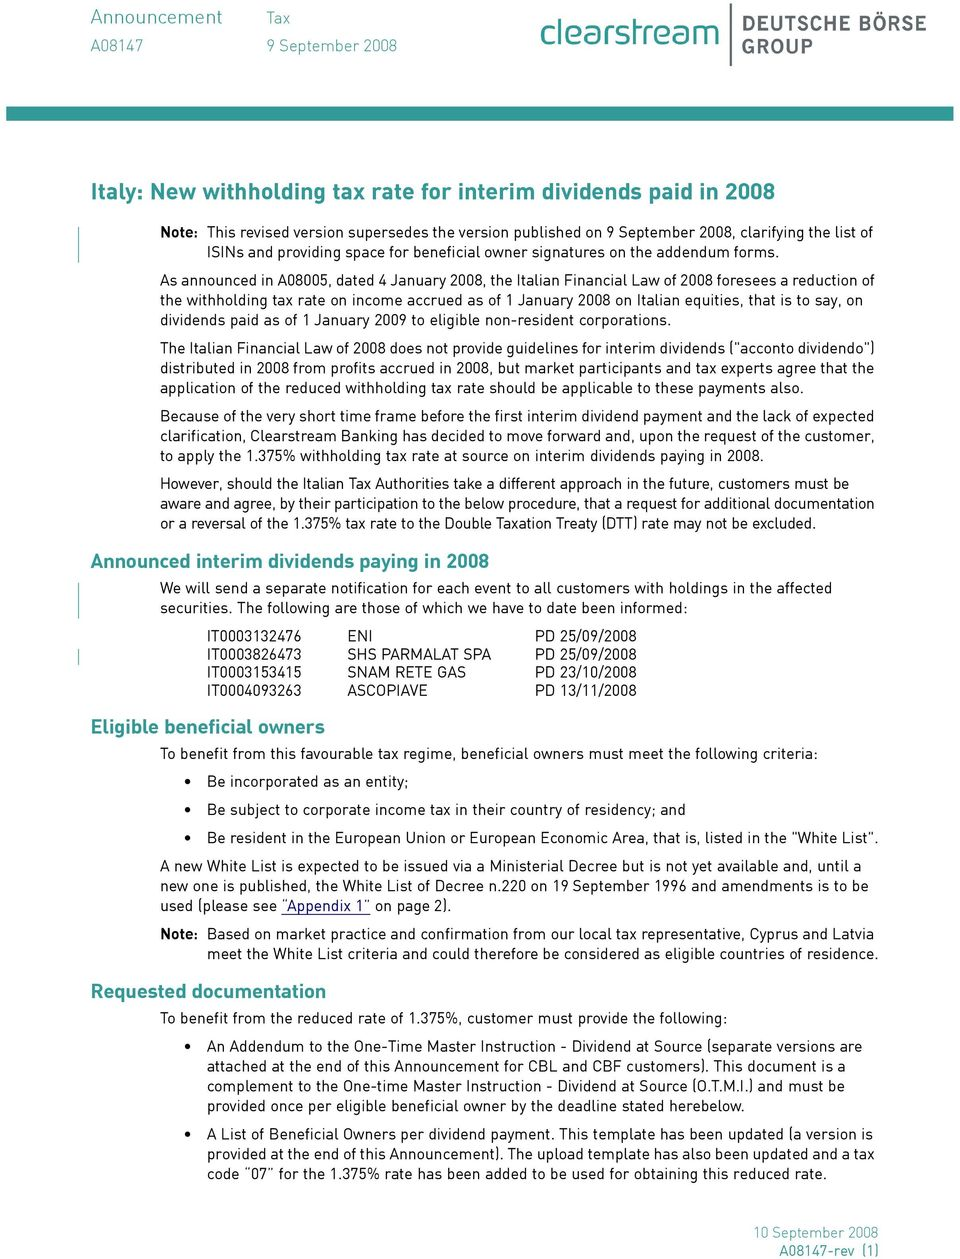 As announced in A08005, dated 4 January 2008, the Italian Financial Law of 2008 foresees a reduction of the withholding tax rate on income accrued as of 1 January 2008 on Italian equities, that is to